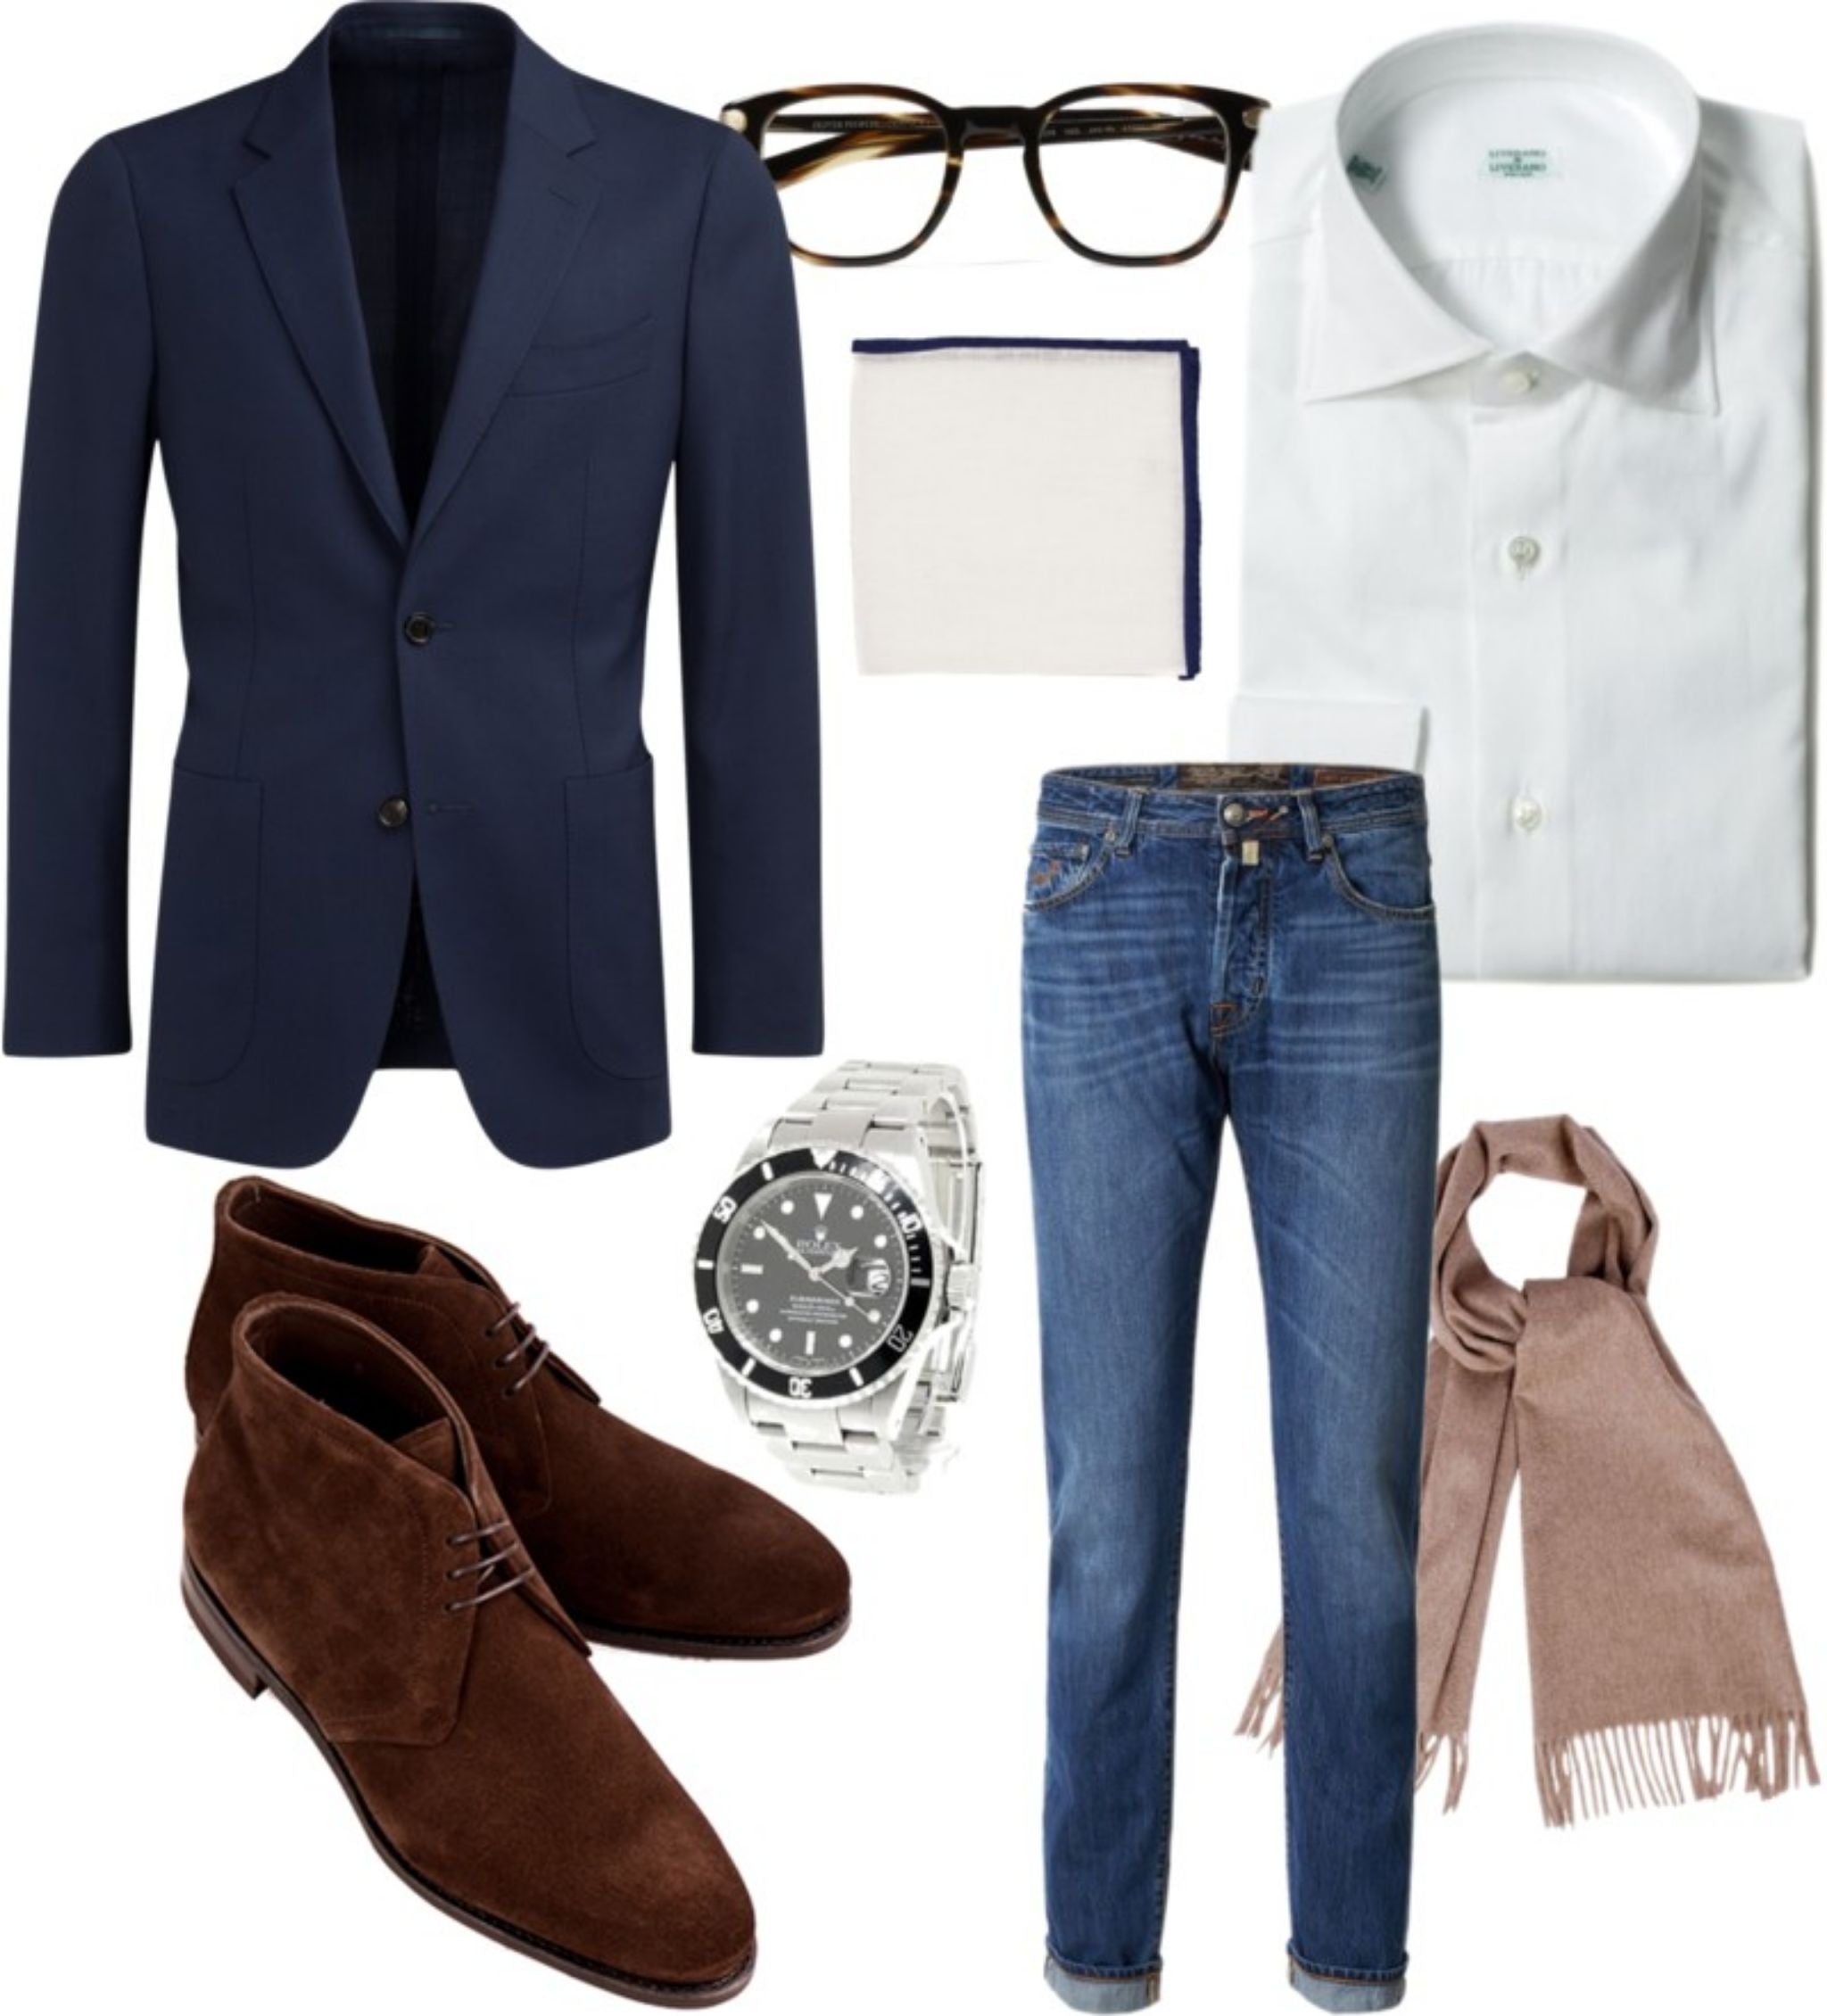 navy-blue-blazer-with-oxford-shirt-and-jeans